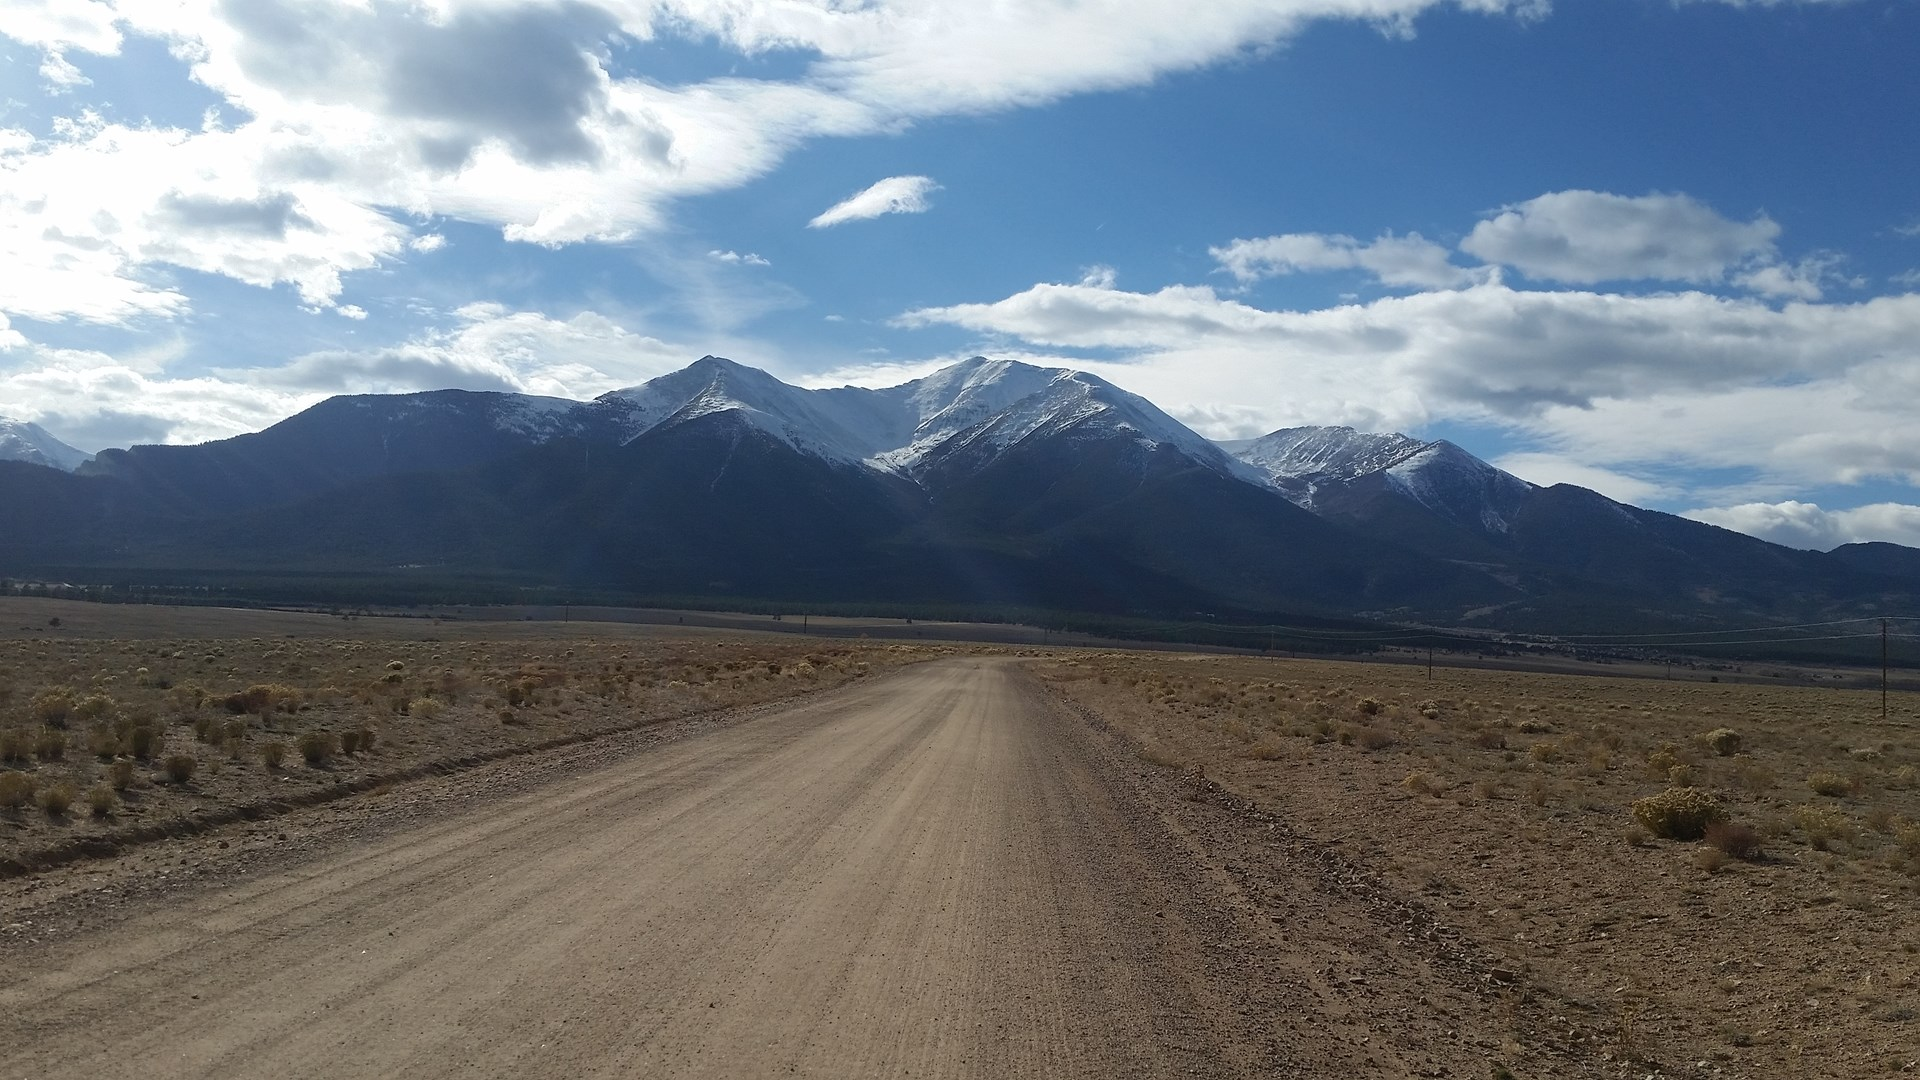 property for sale near Mt. Princeton